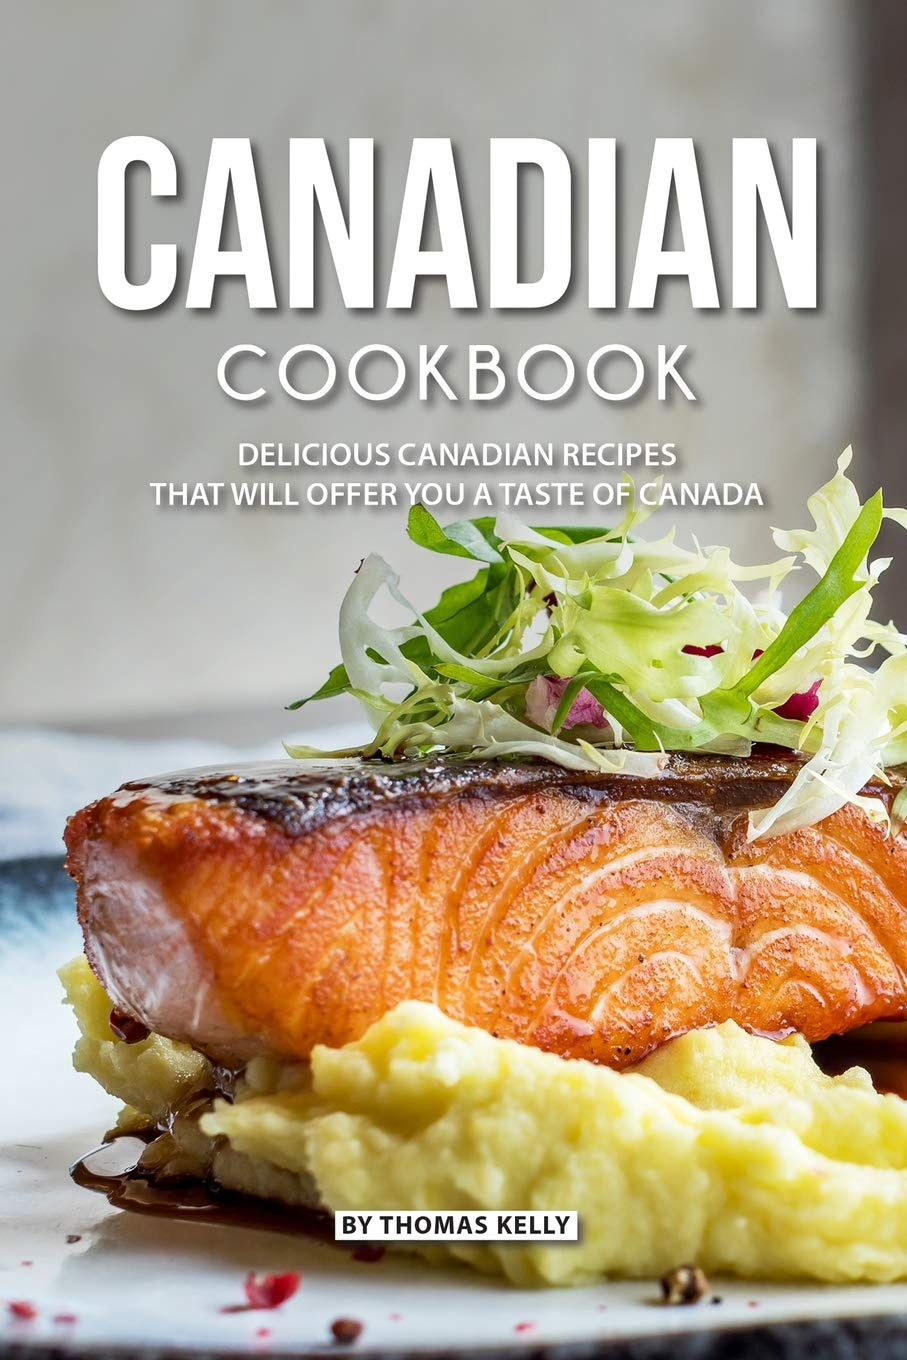 Canadian Cookbook Delicious Canadian Recipes That Will Offer You A Taste Of Canada Kelly Thomas 9781795733168 Books Amazon Ca